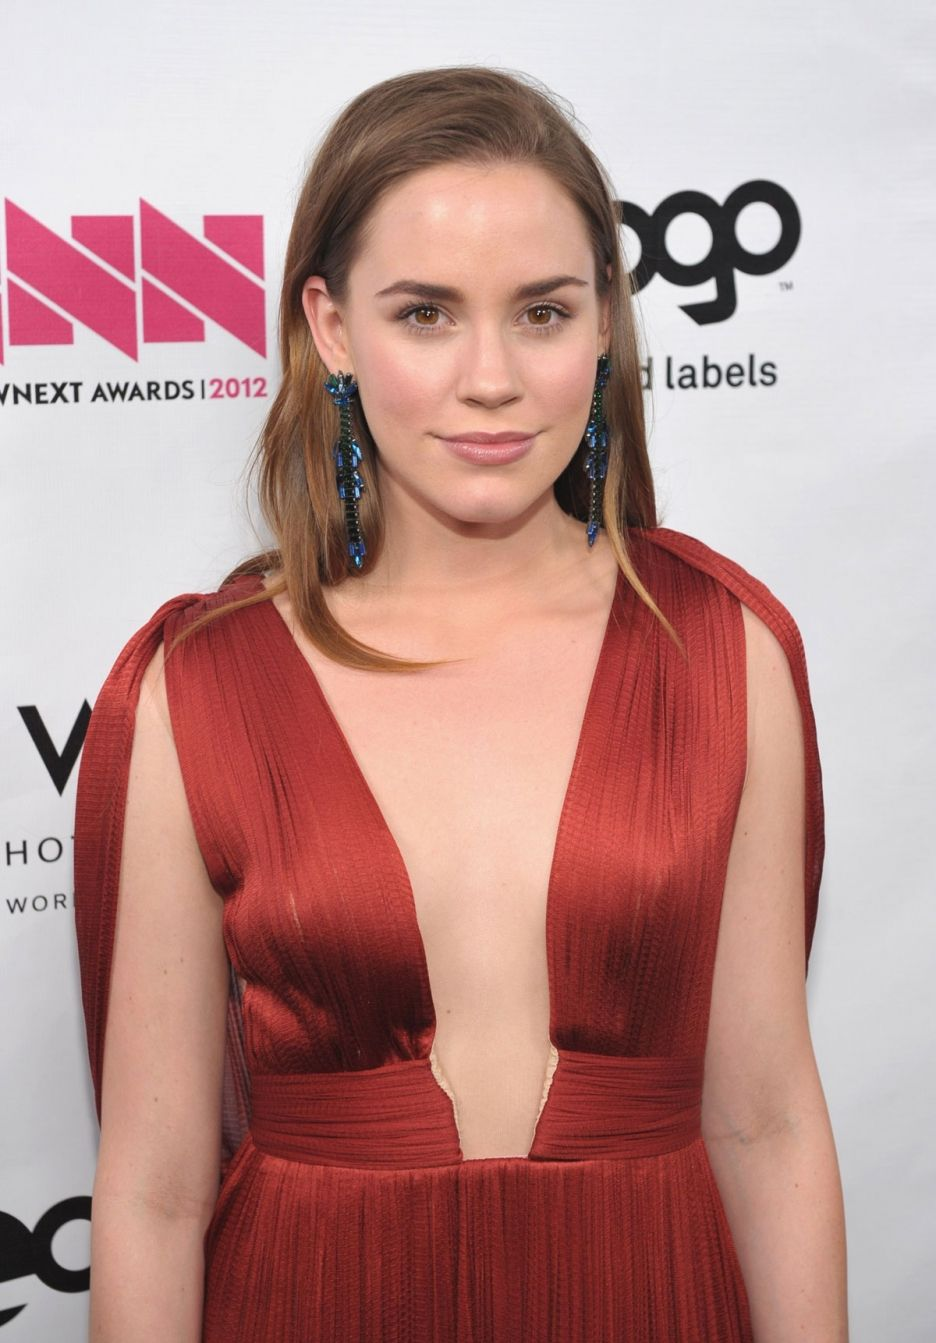 Cleavage Celebrity Christa Allen naked photo 2017